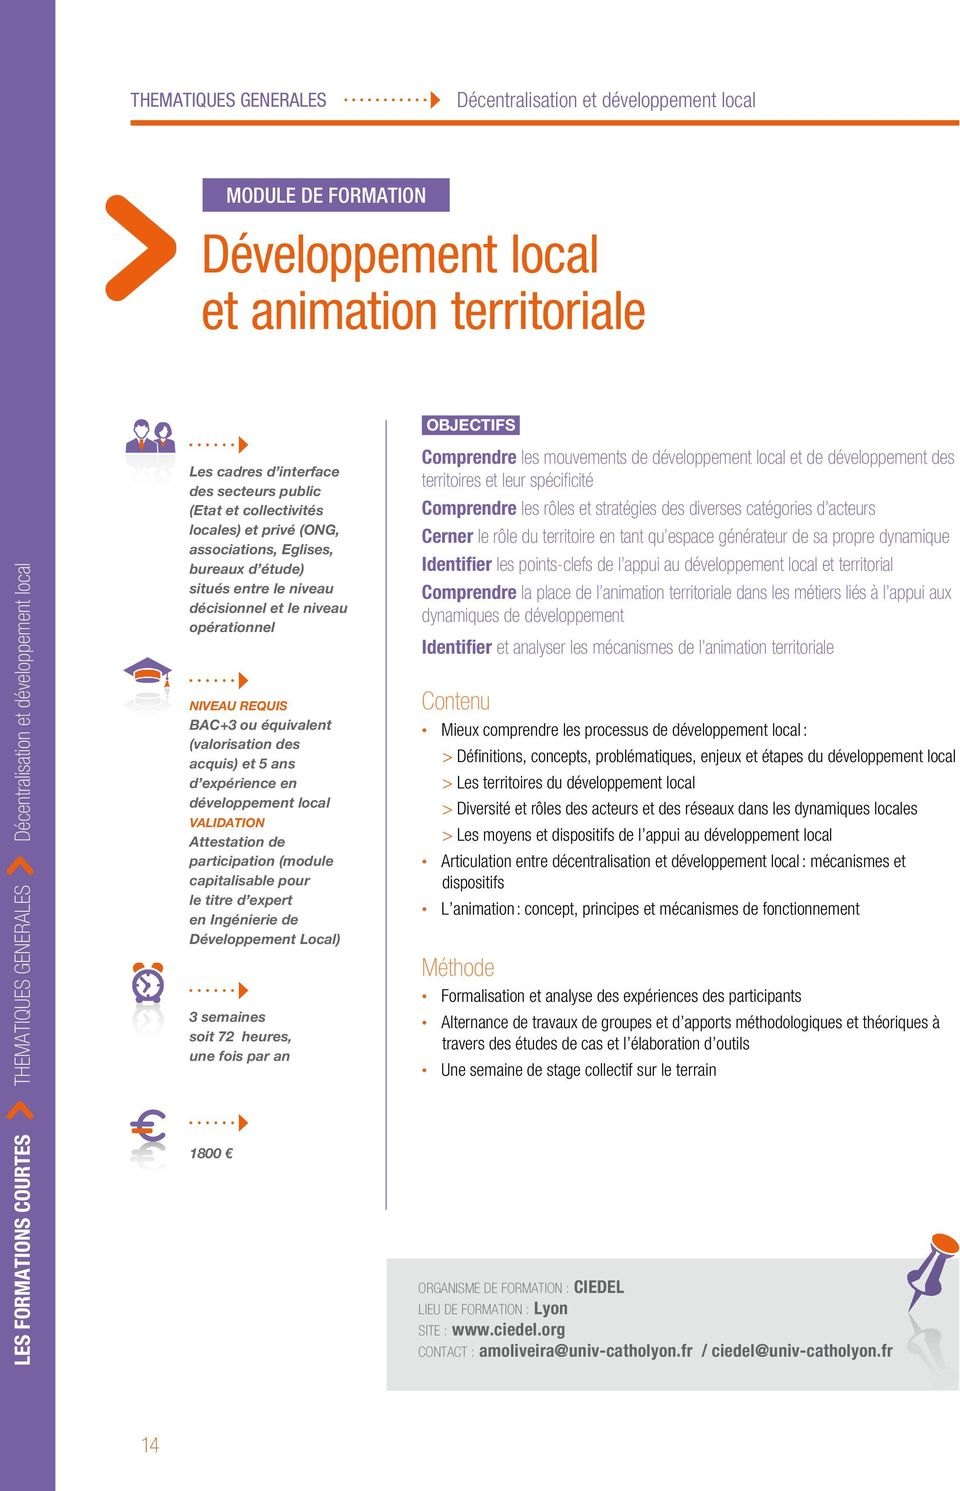 équivalent (valorisation des acquis) et 5 ans d expérience en développement local Attestation de participation (module capitalisable pour le titre d expert en Ingénierie de Développement Local) 3